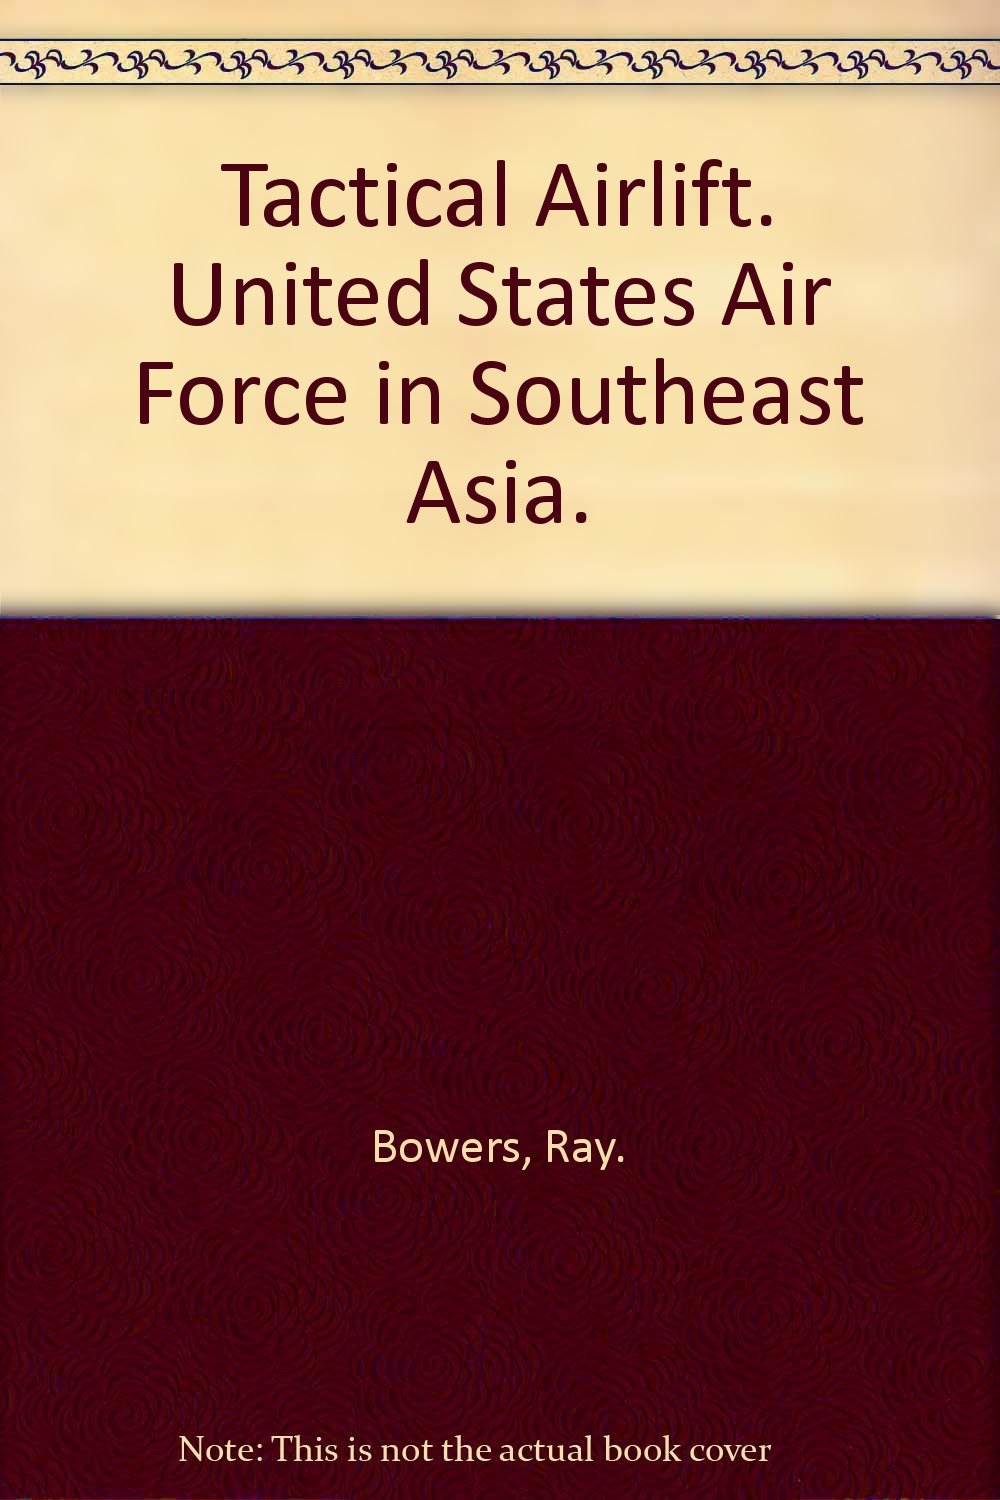 fd8c050c56257 Tactical Airlift. United States Air Force in Southeast Asia.: Ray ...